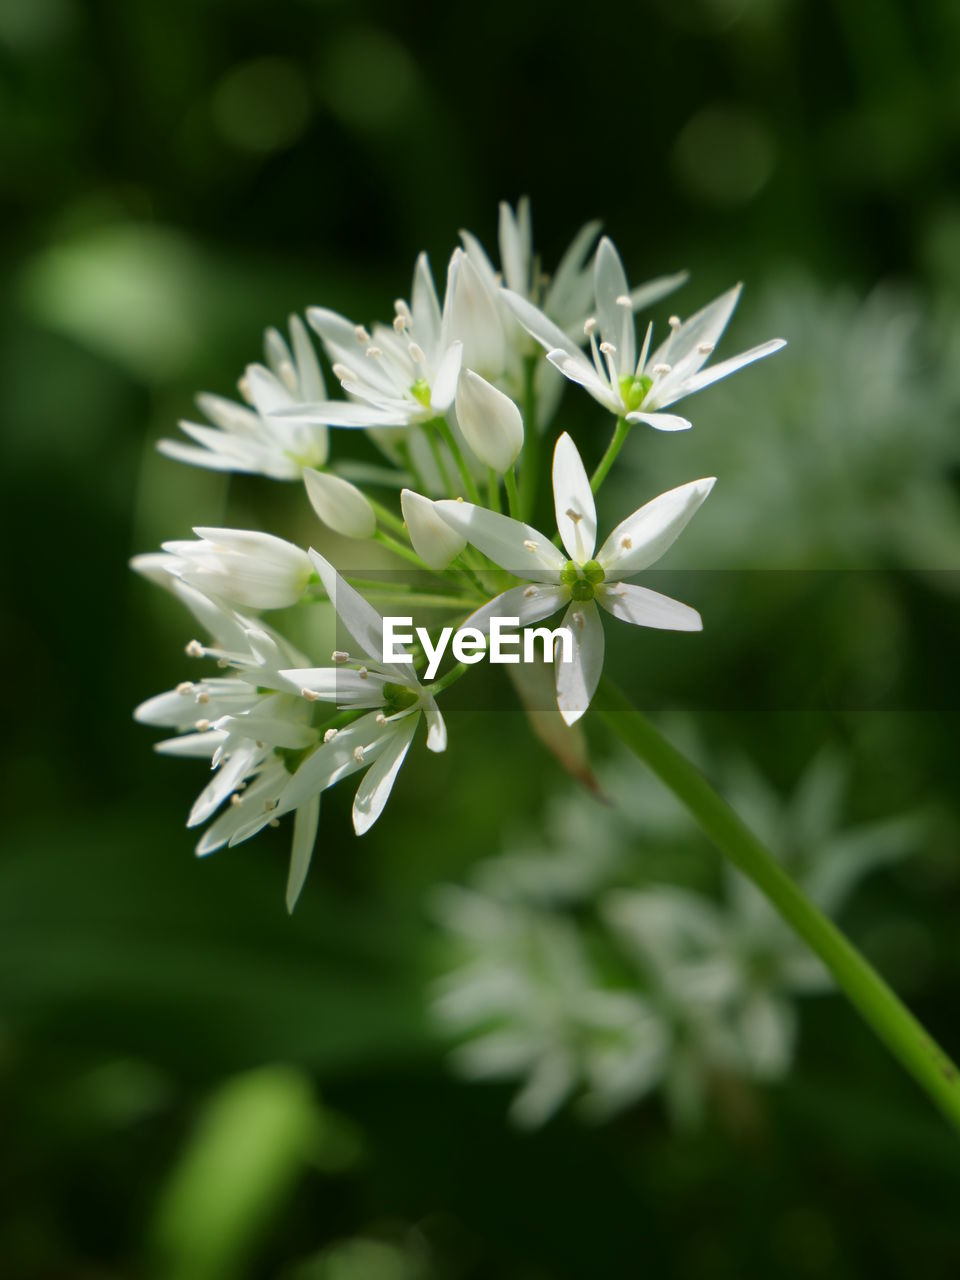 flower, flowering plant, vulnerability, beauty in nature, fragility, plant, freshness, growth, petal, white color, close-up, nature, inflorescence, focus on foreground, no people, flower head, selective focus, green color, day, outdoors